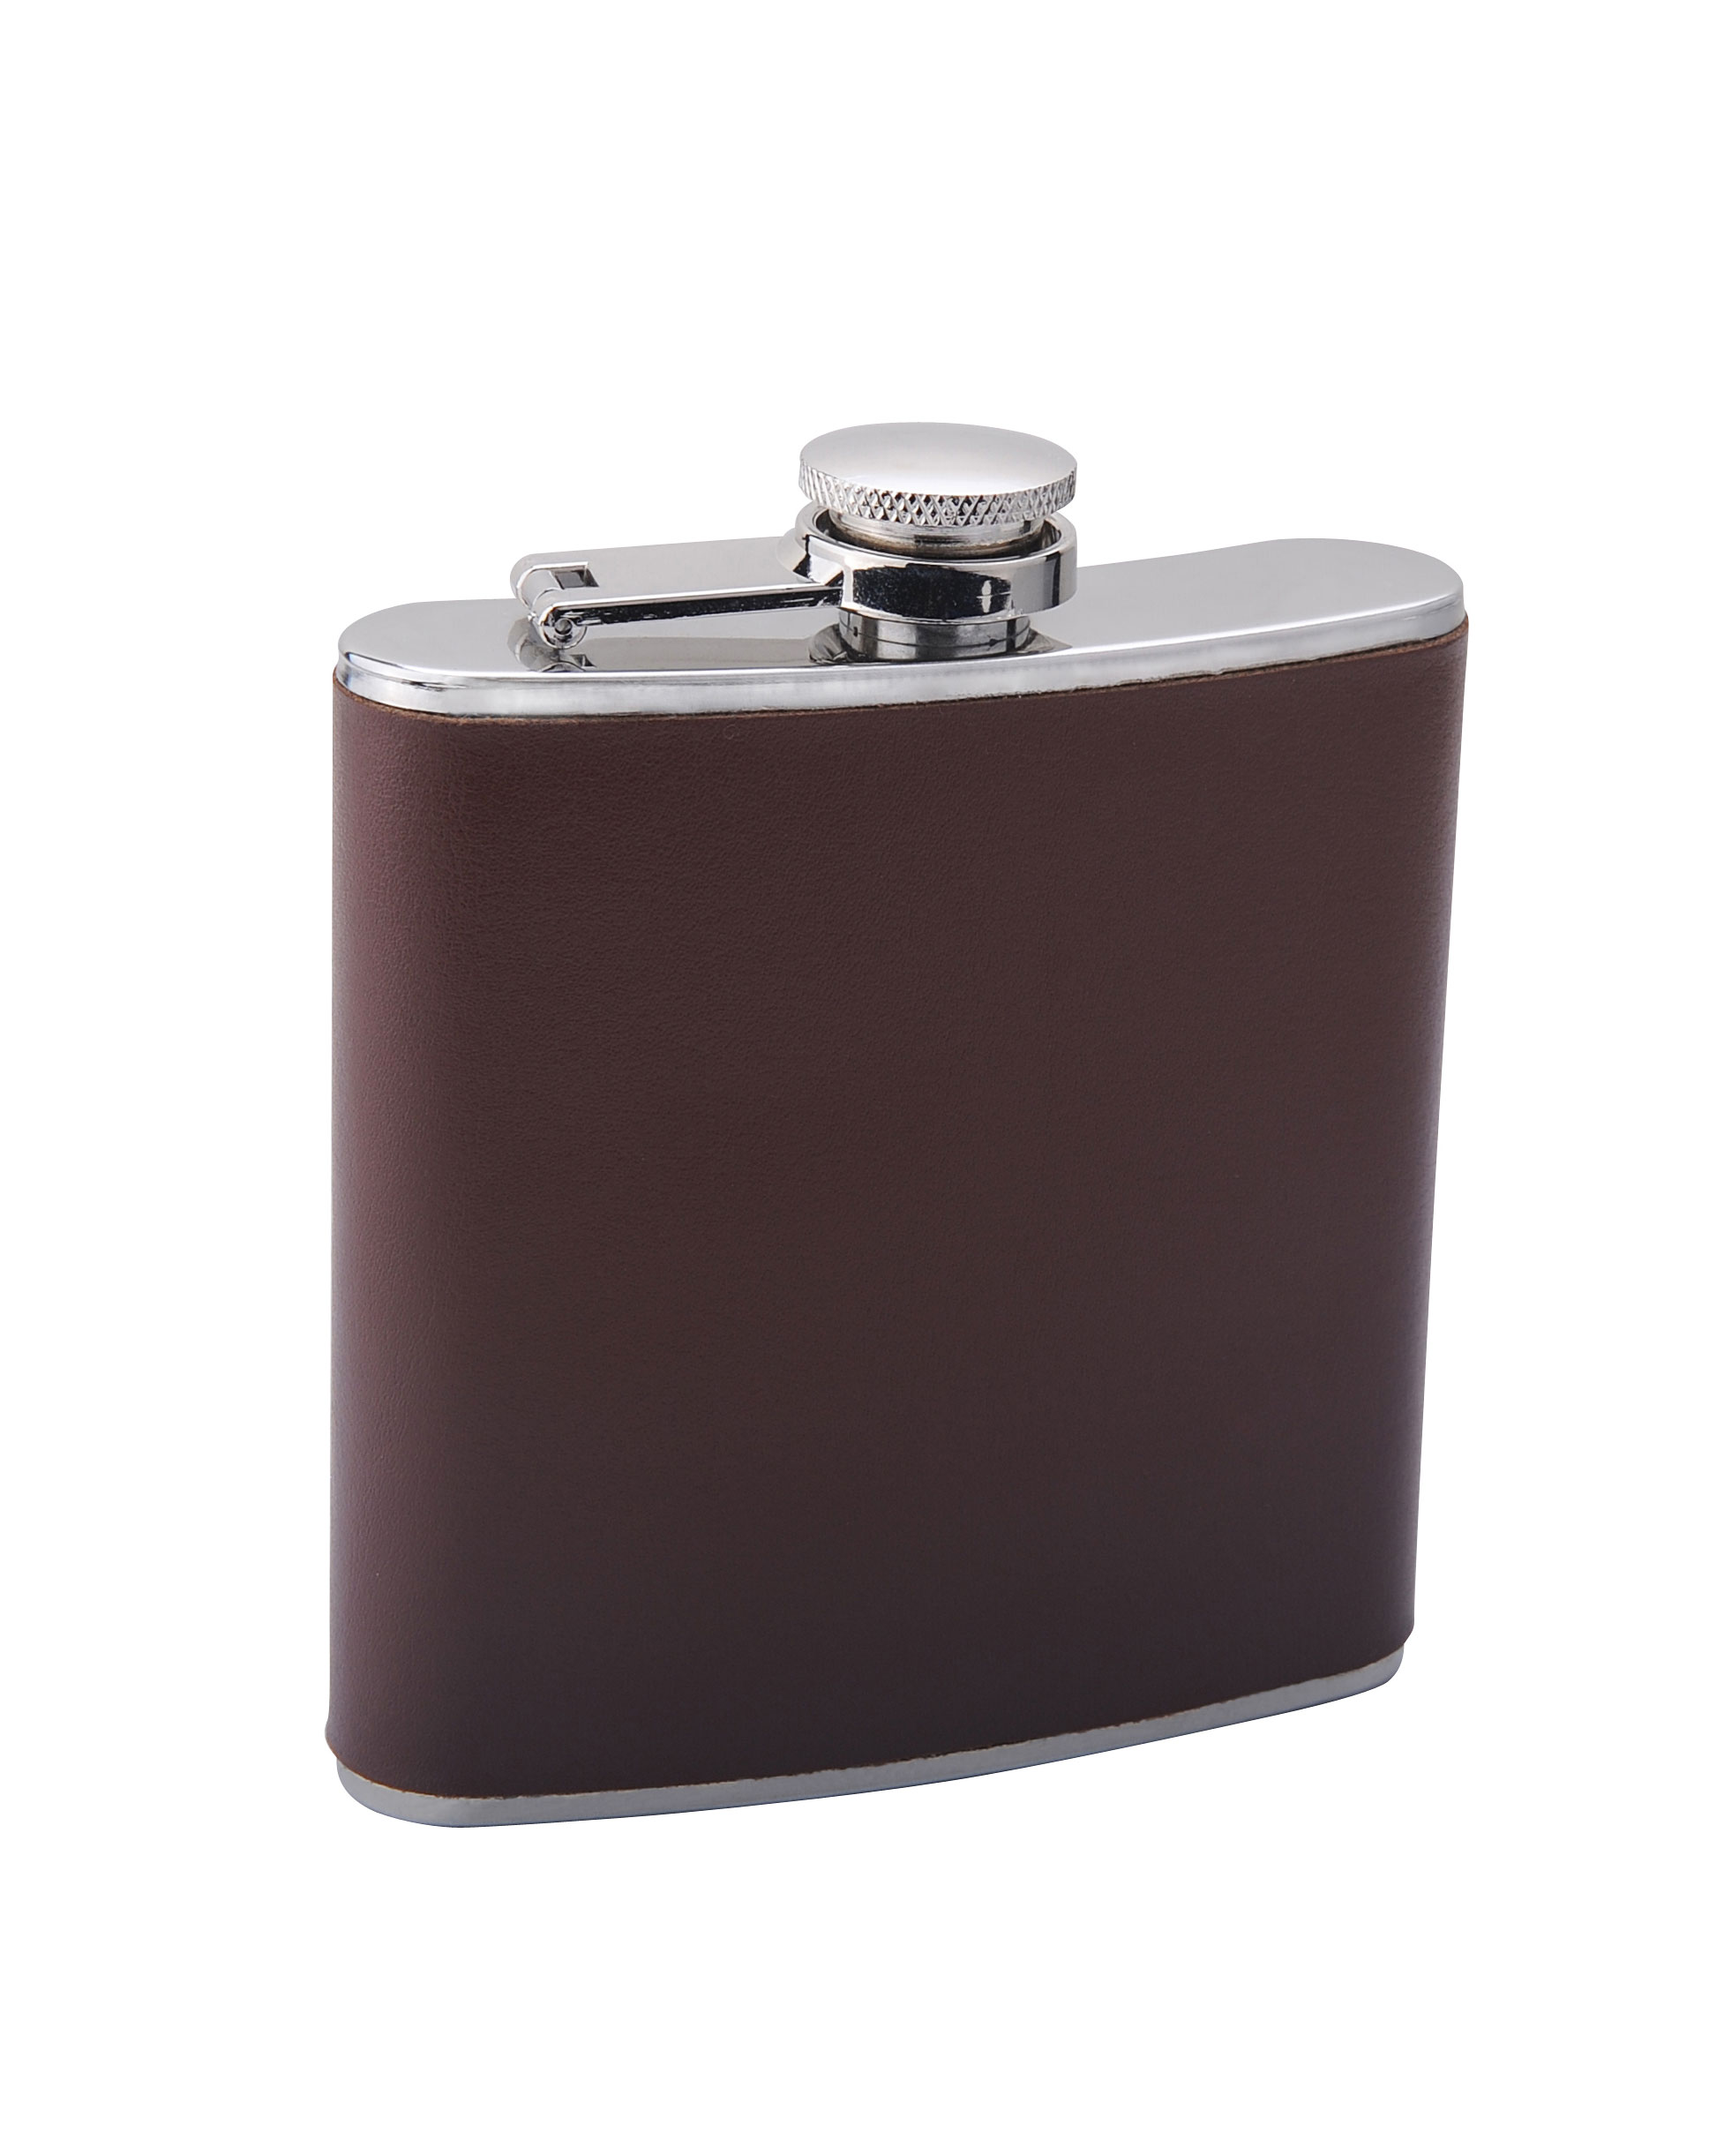 leather-metal-flask-0216.jpg